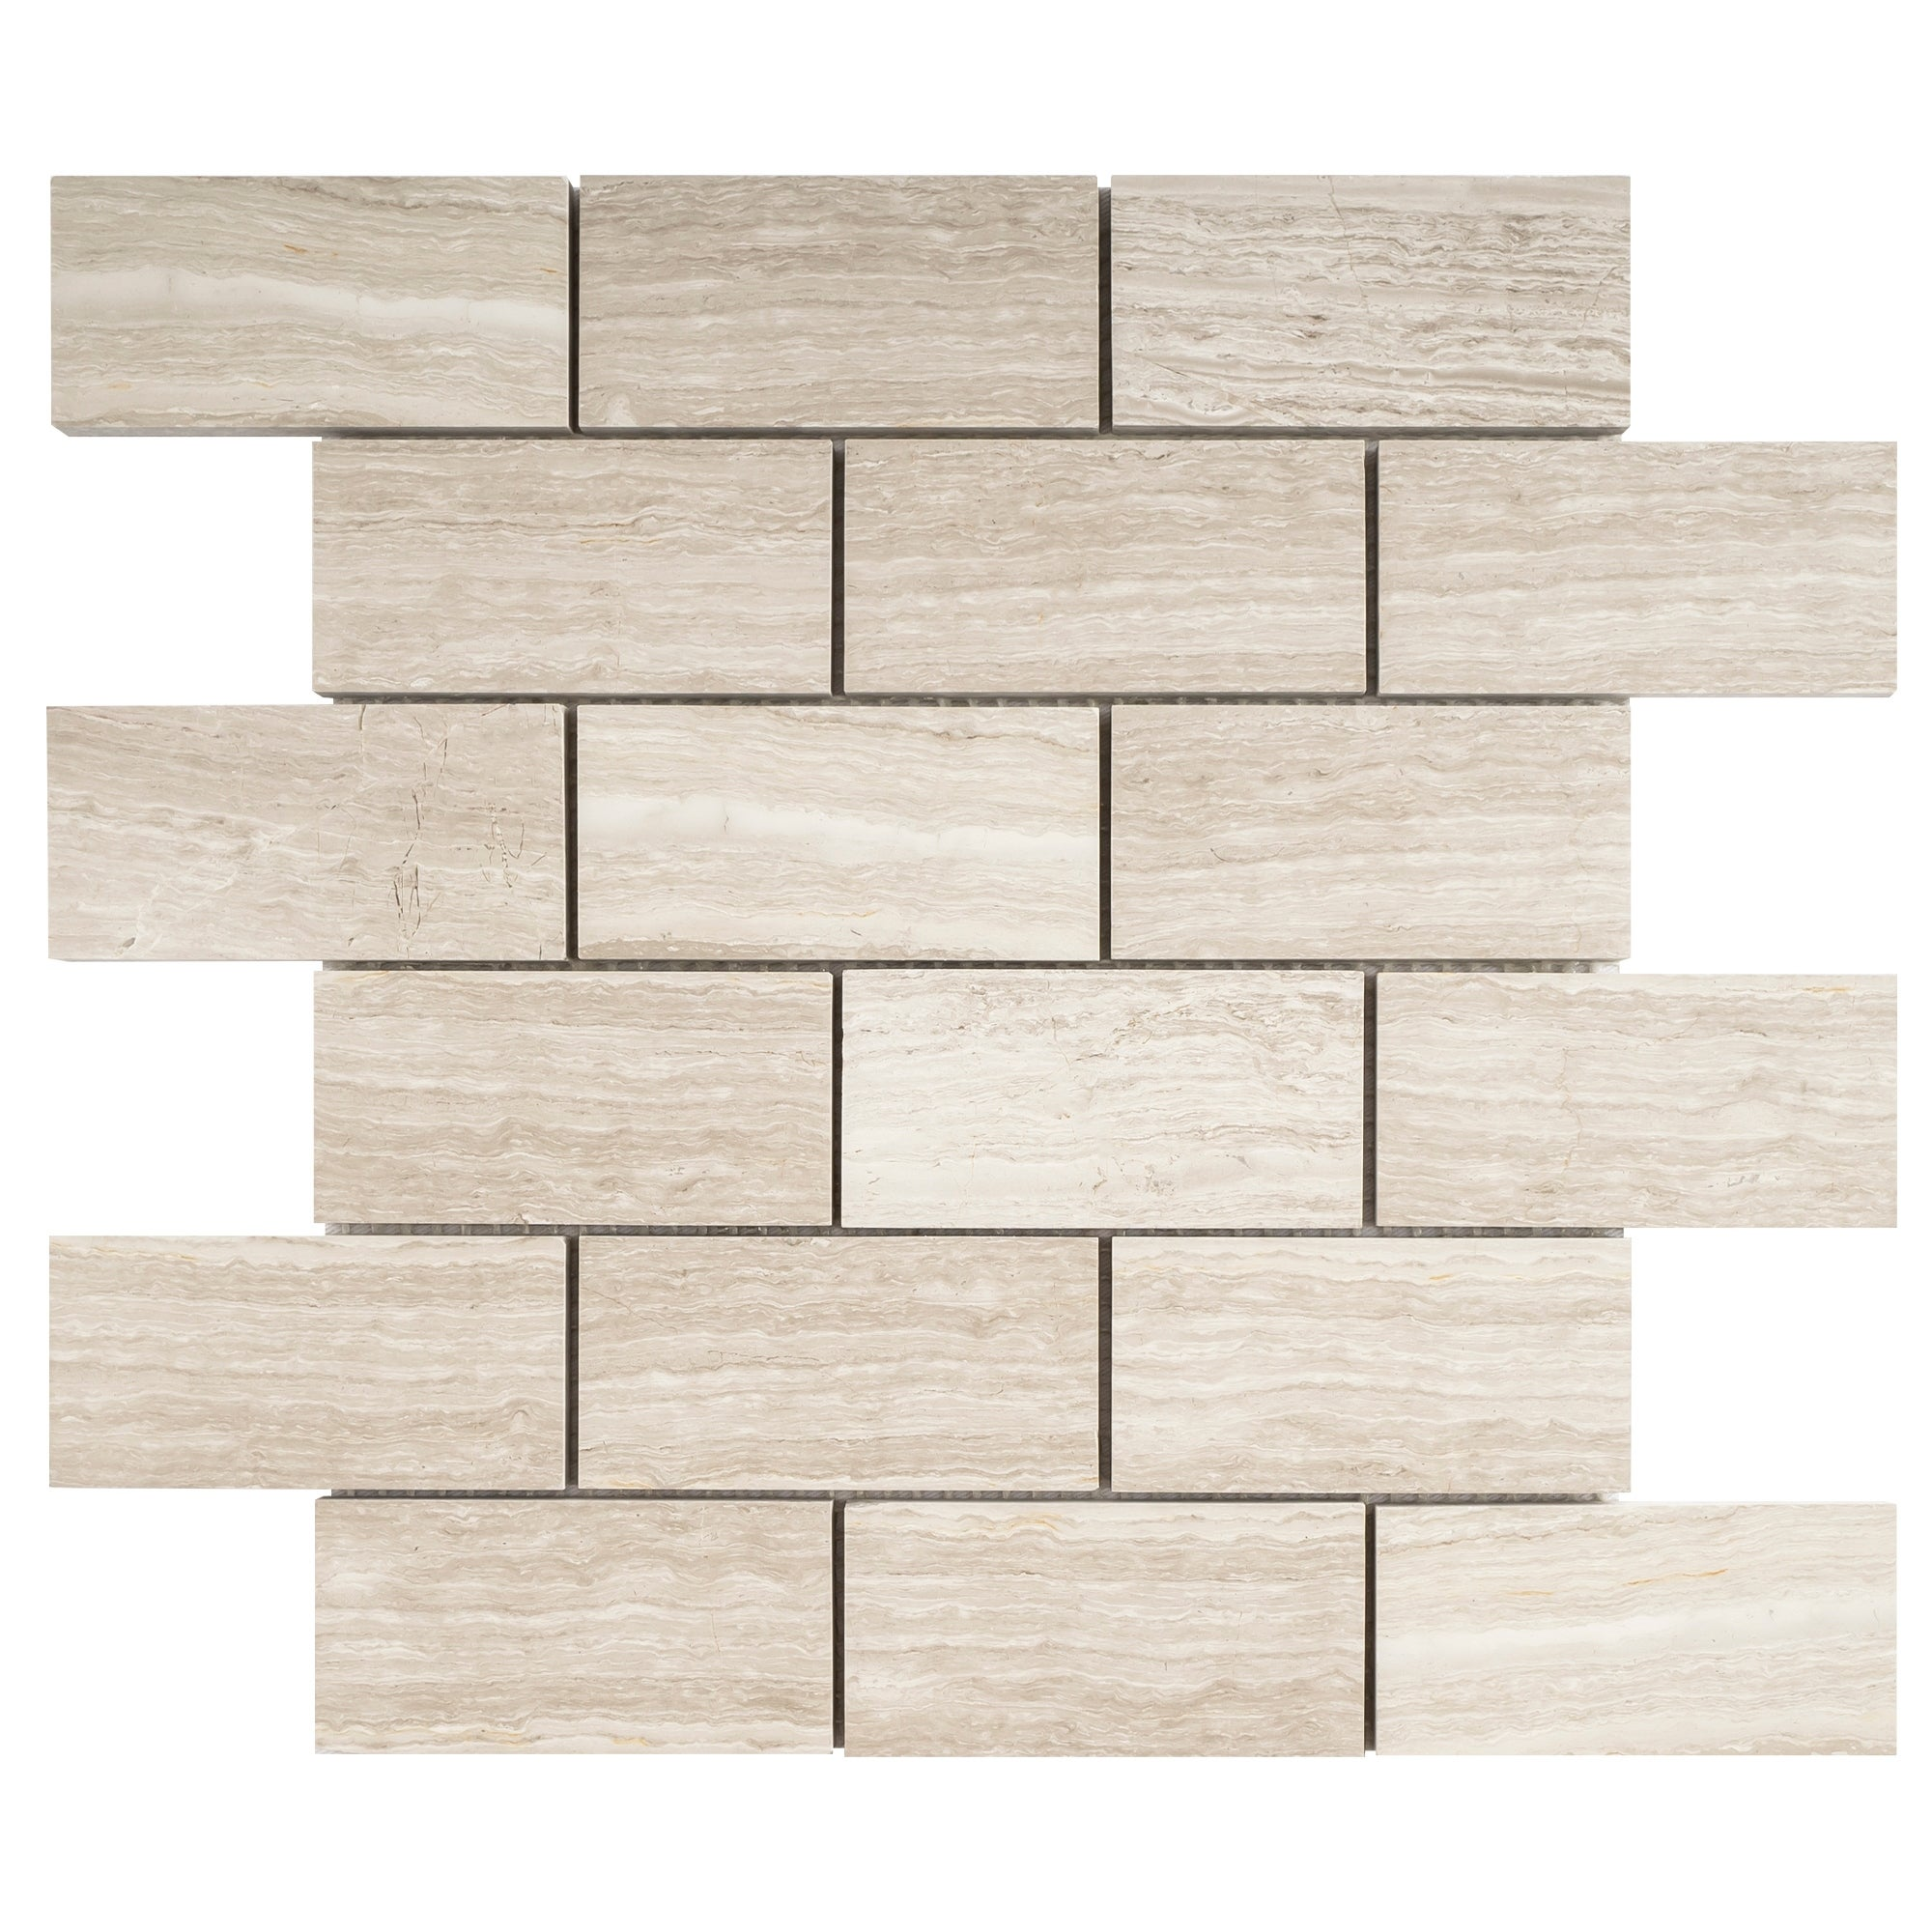 Marble Subway Tile In Wooden Beige